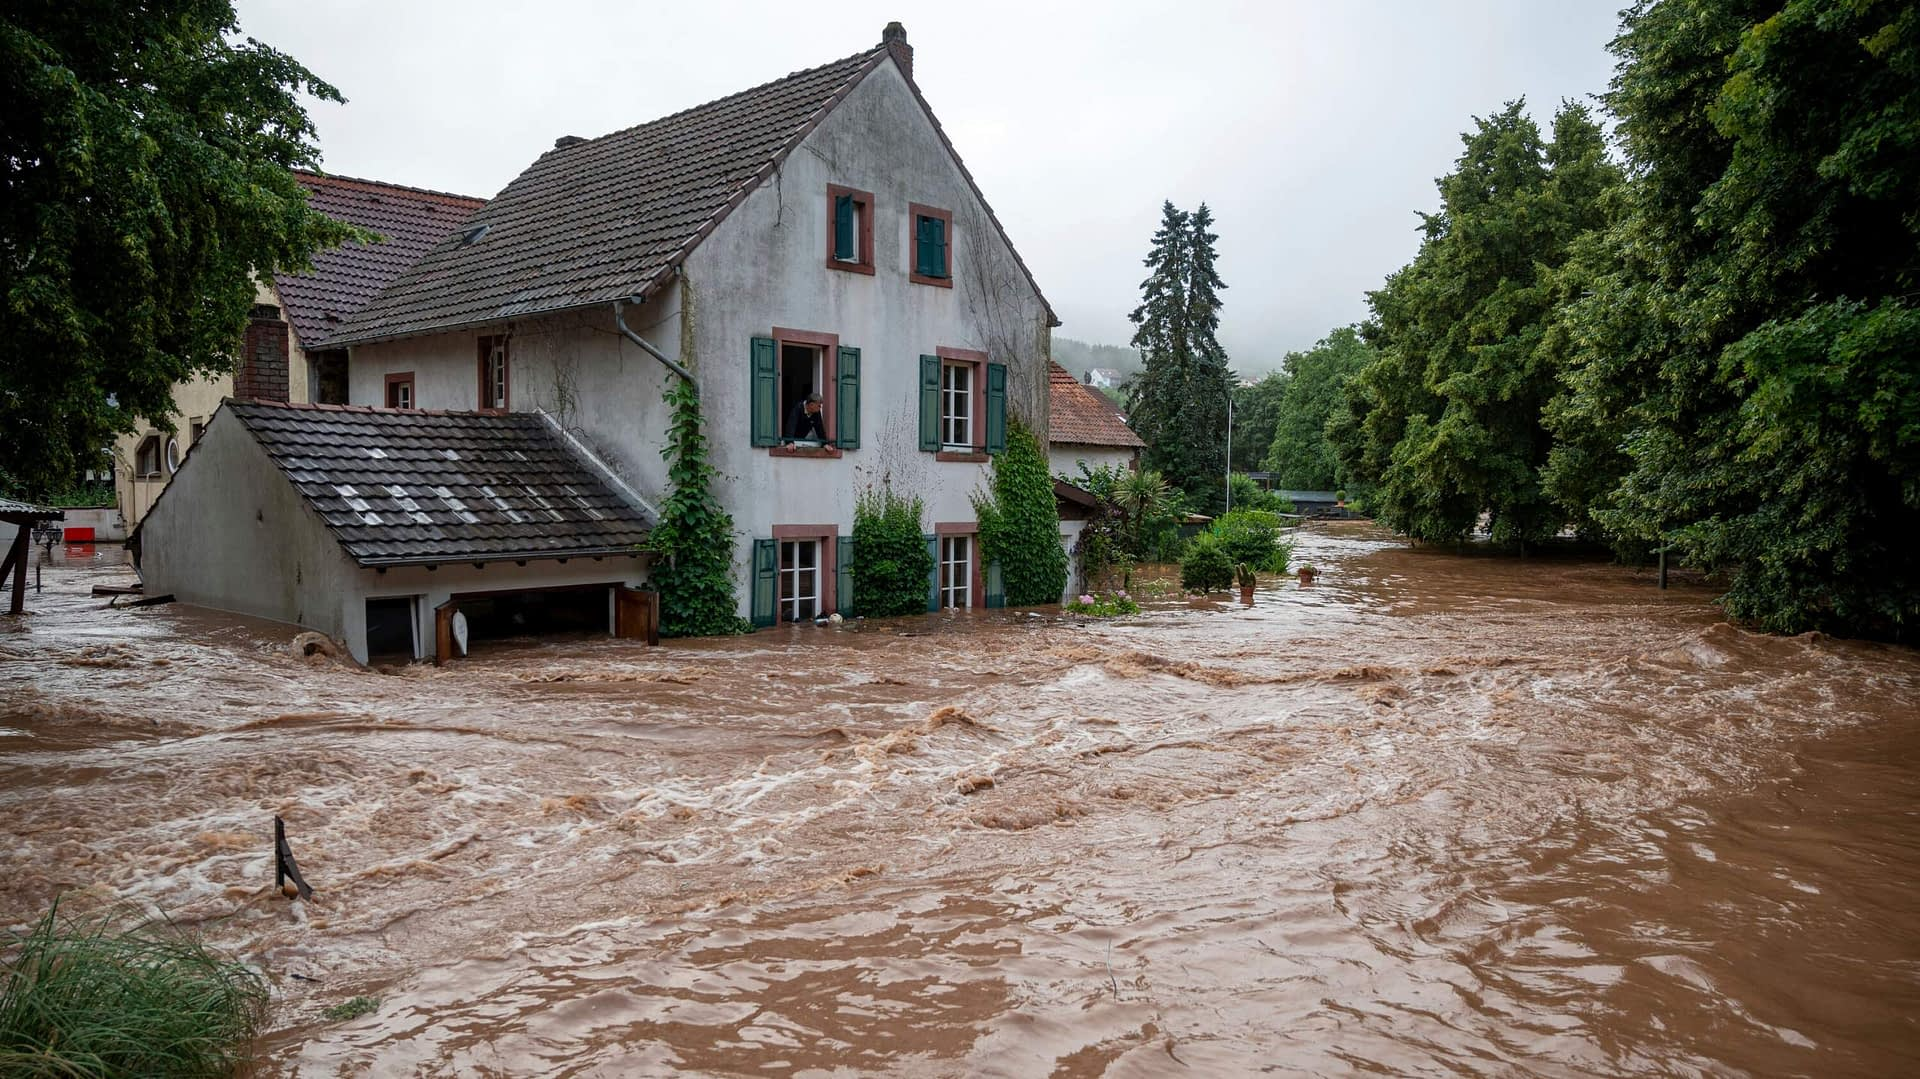 Coconino County in Arizona declared a state of emergency due to flooding